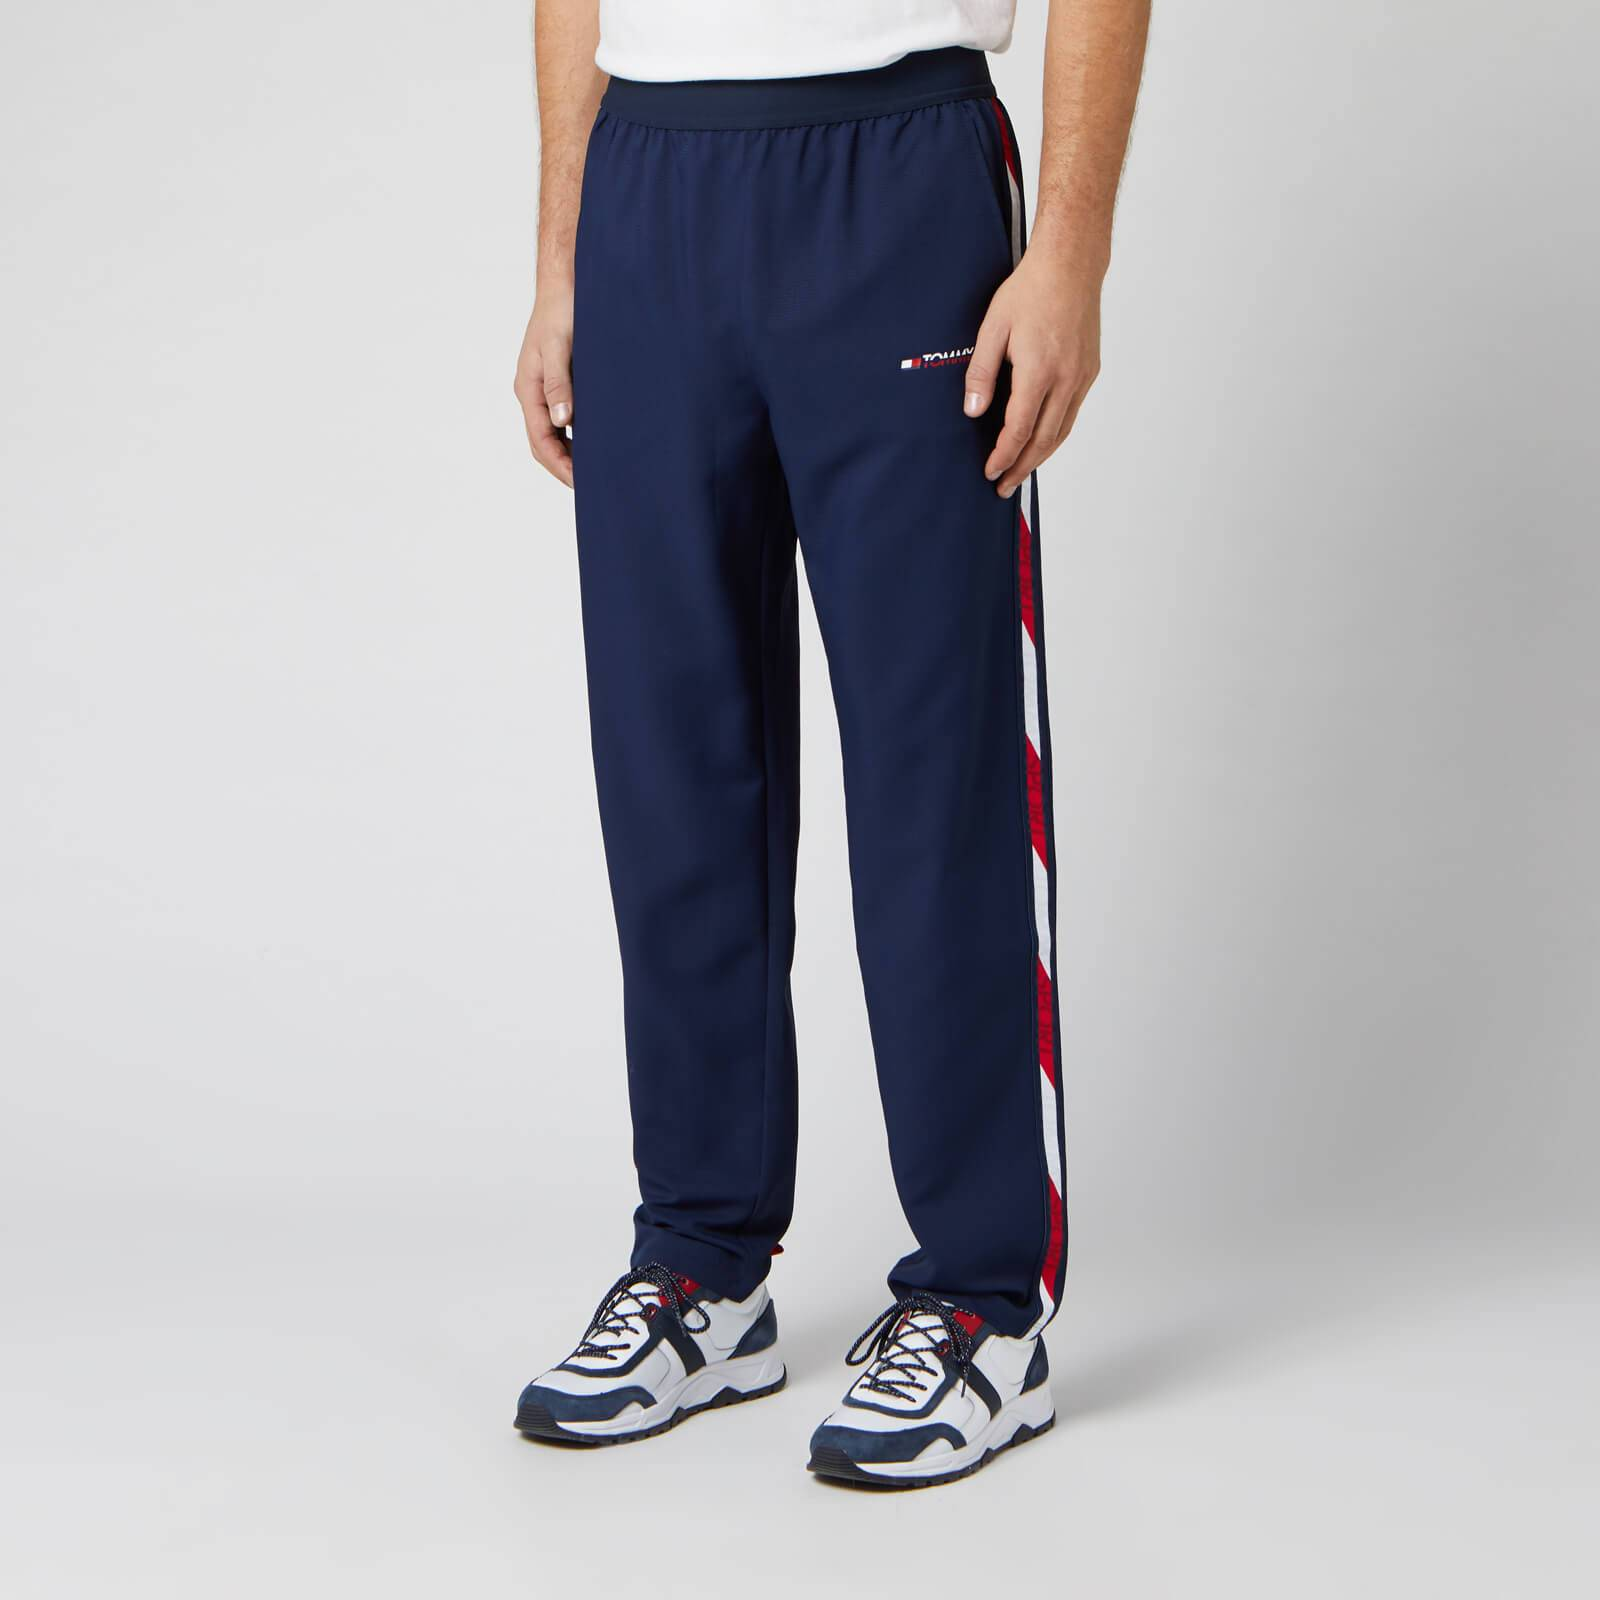 Tommy Hilfiger Sport Men's Woven Tape Pants - Sport Navy - S